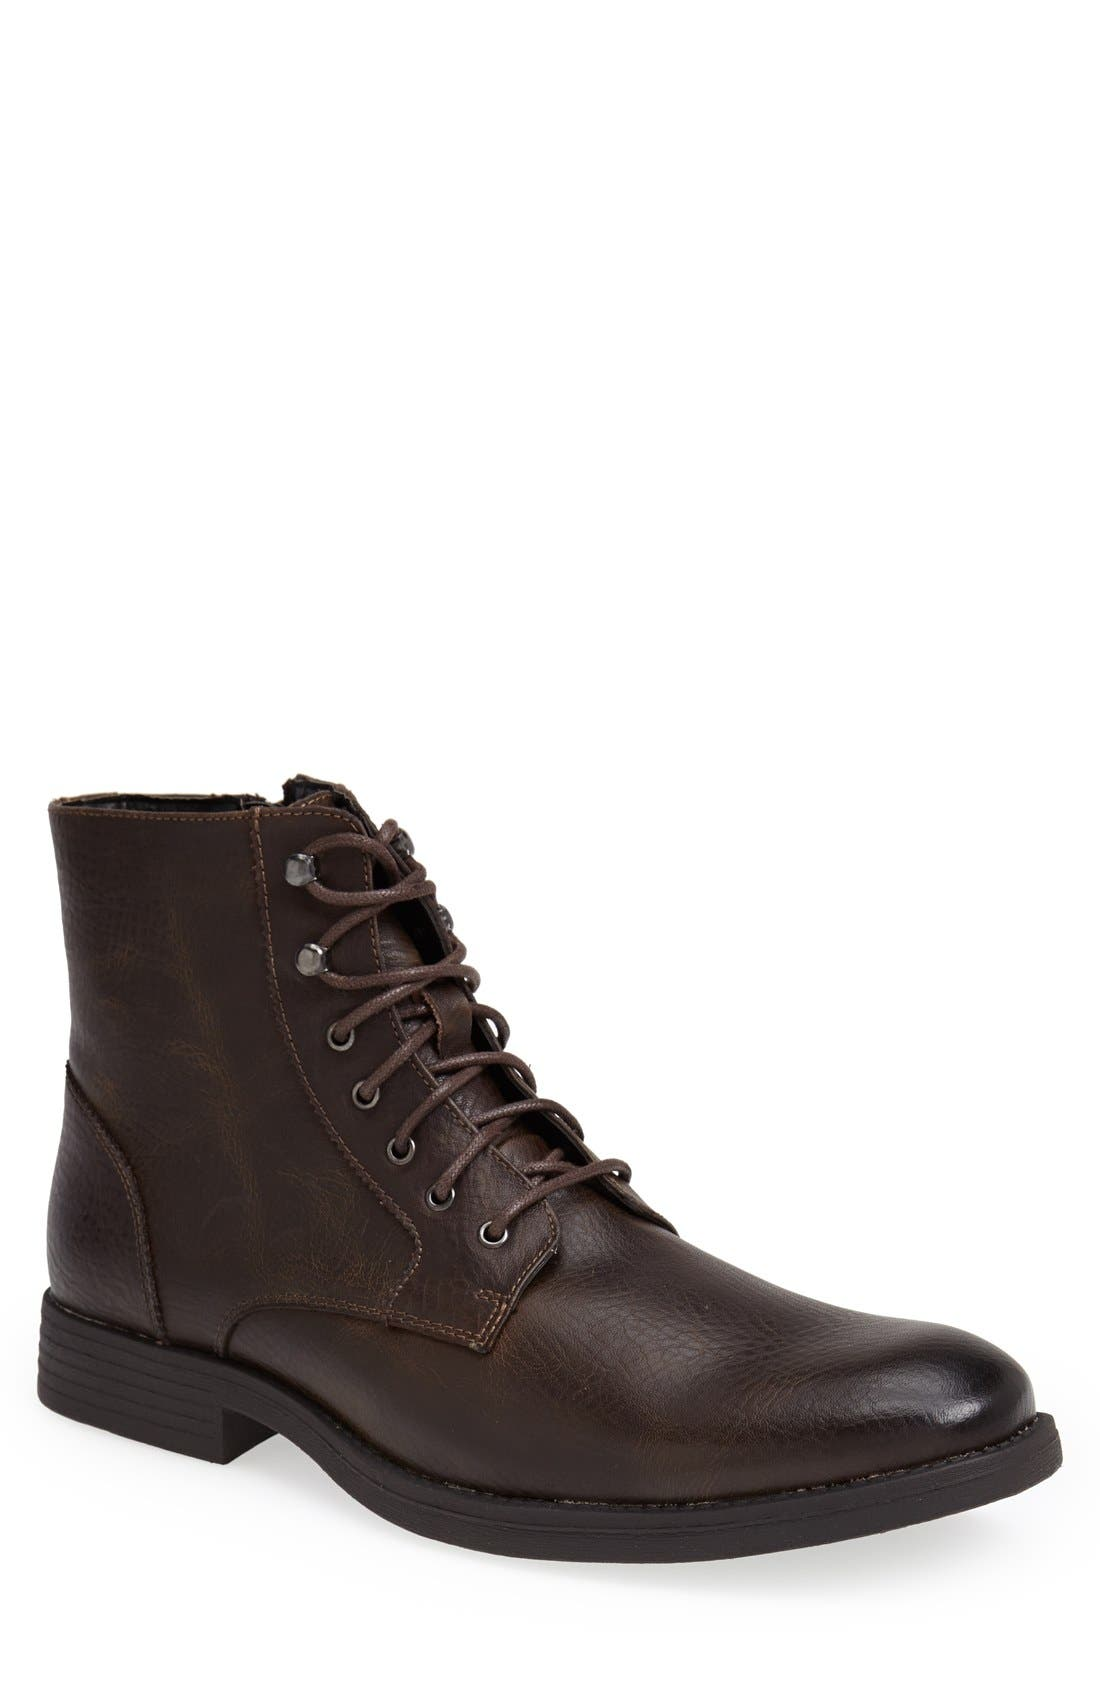 ROBERT WAYNE 'Elbio' Plain Toe Boot